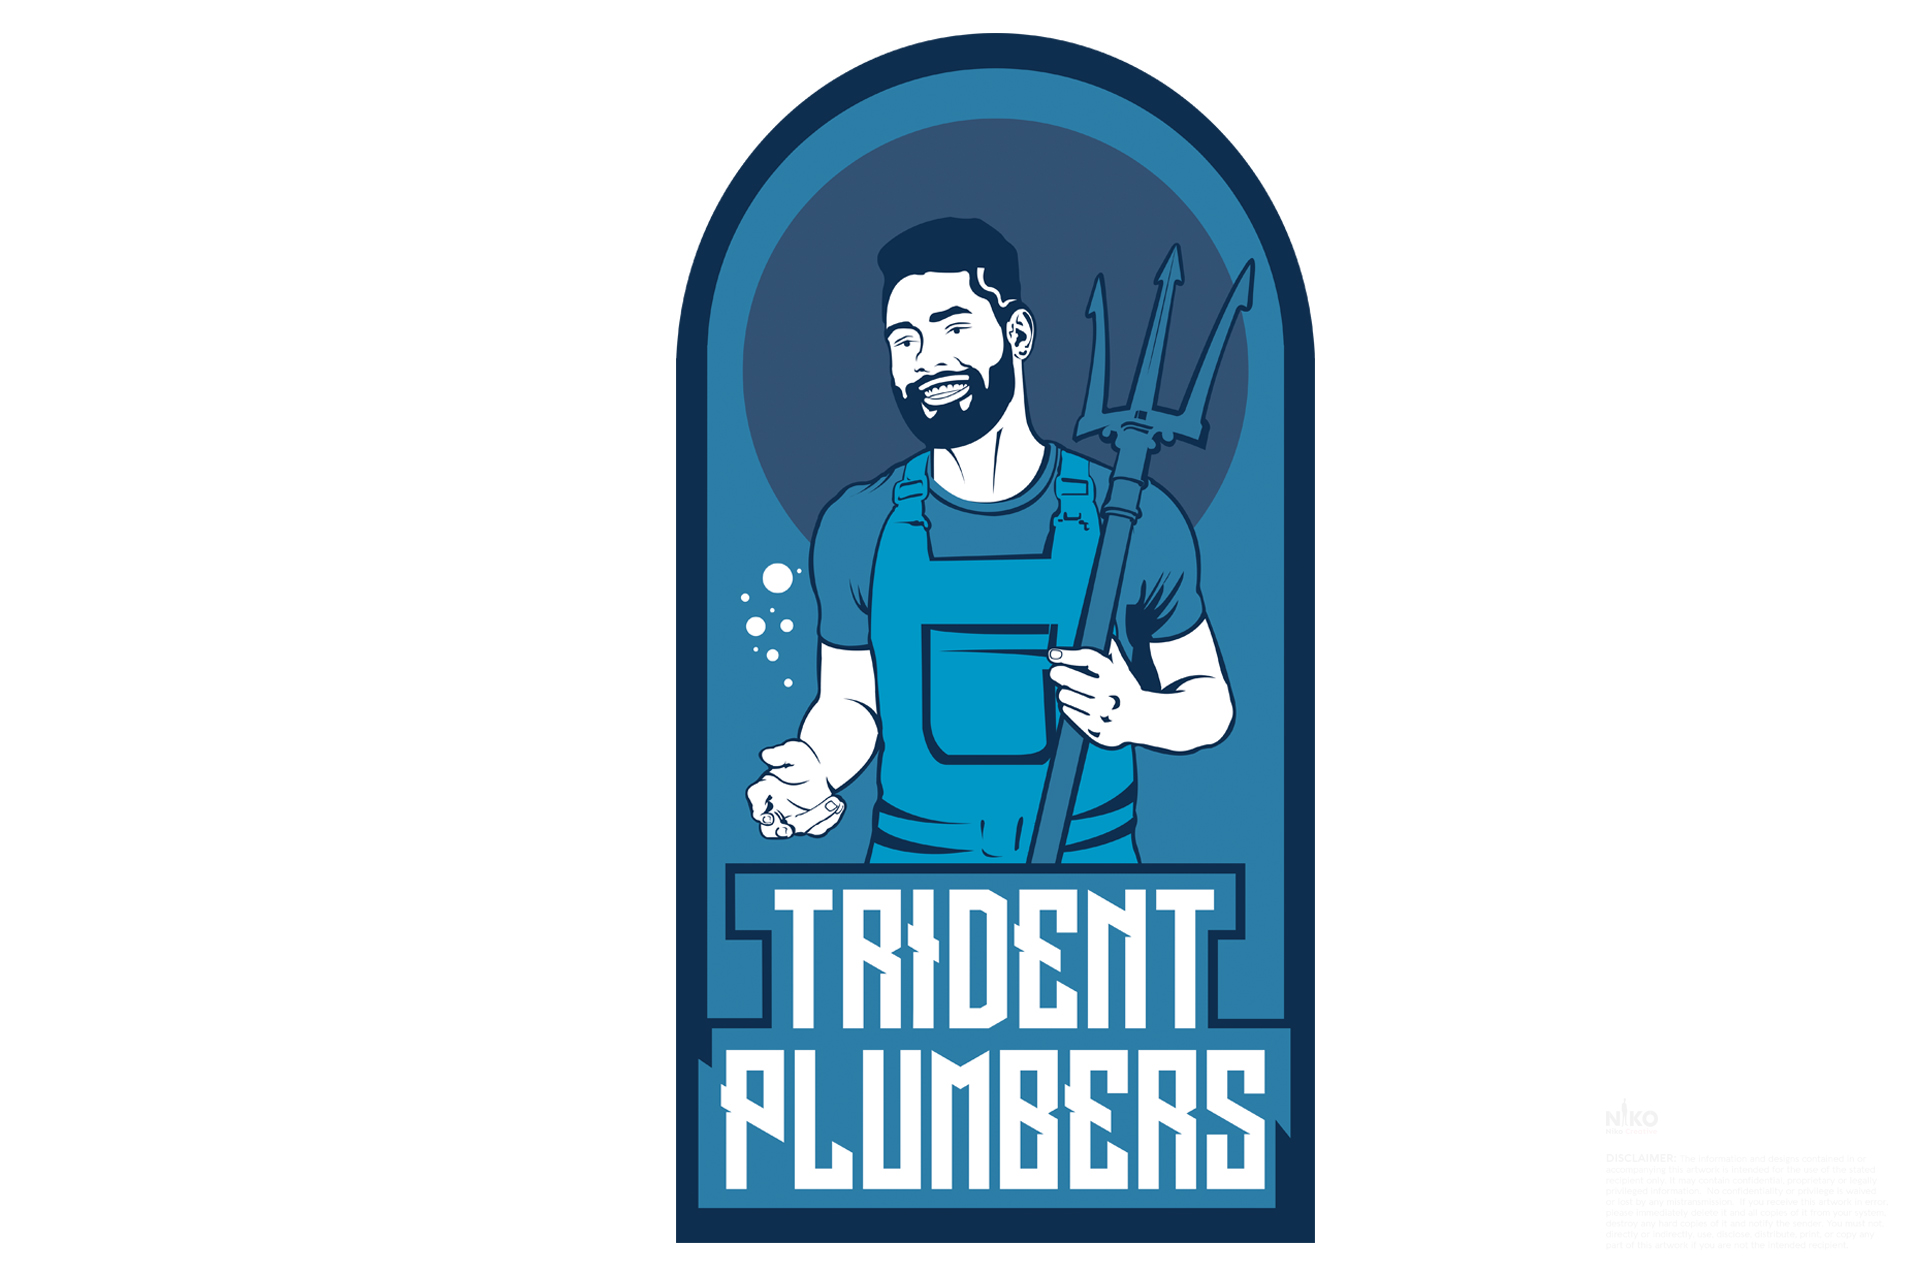 Day 7 Trident Plumbers